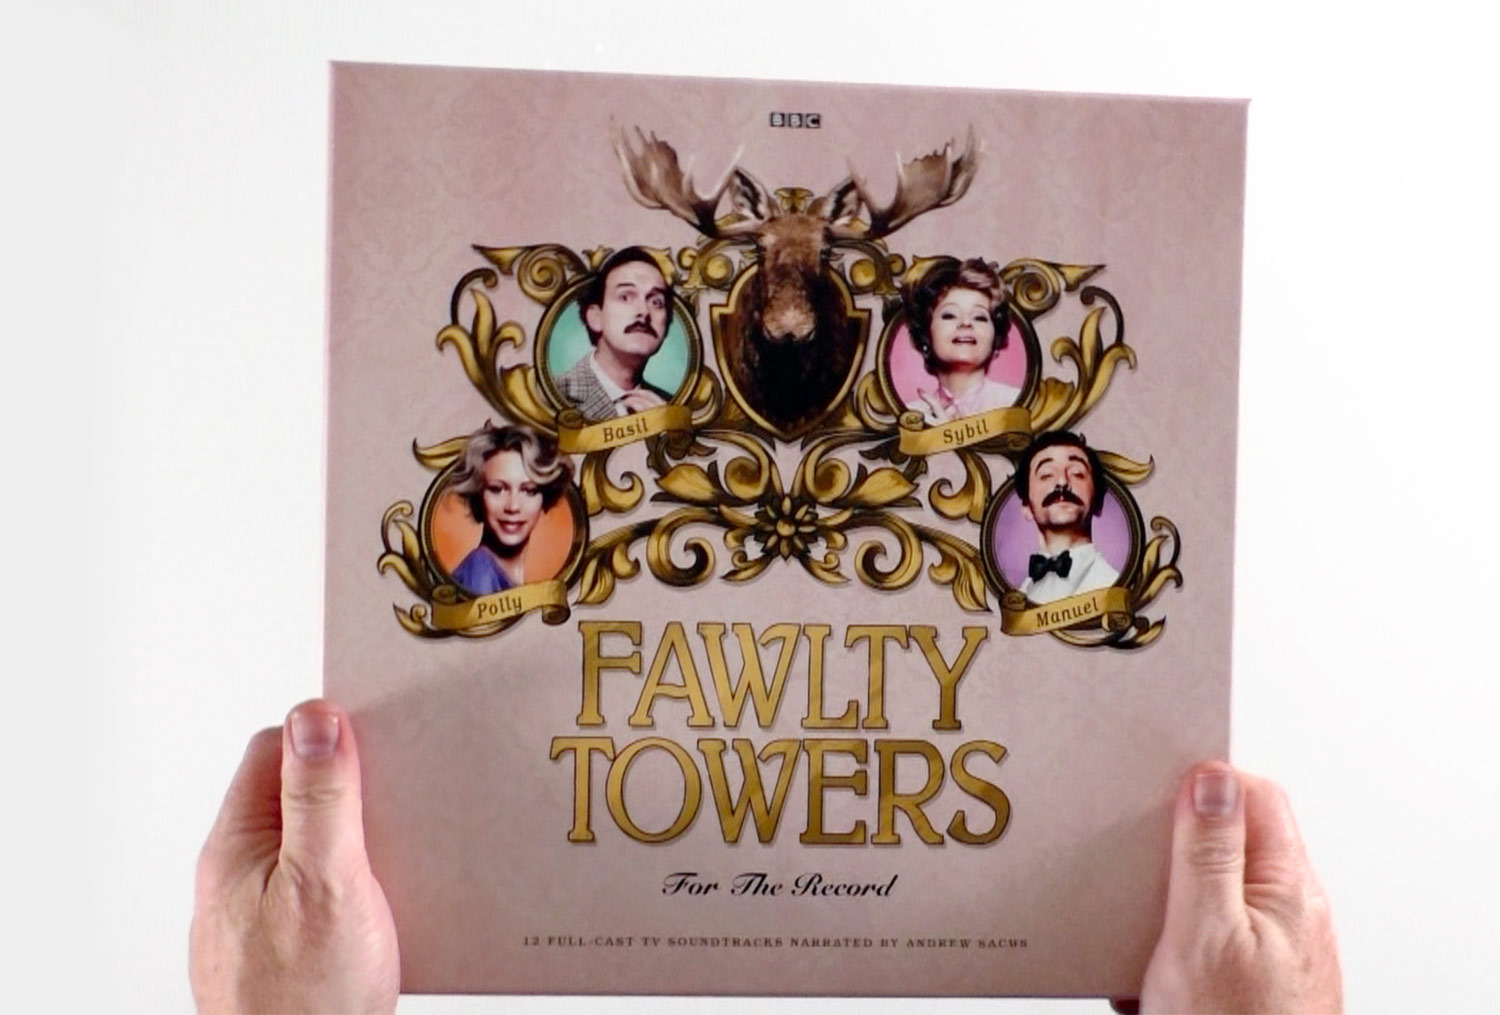 Fawlty Towers: For The Record unboxing video